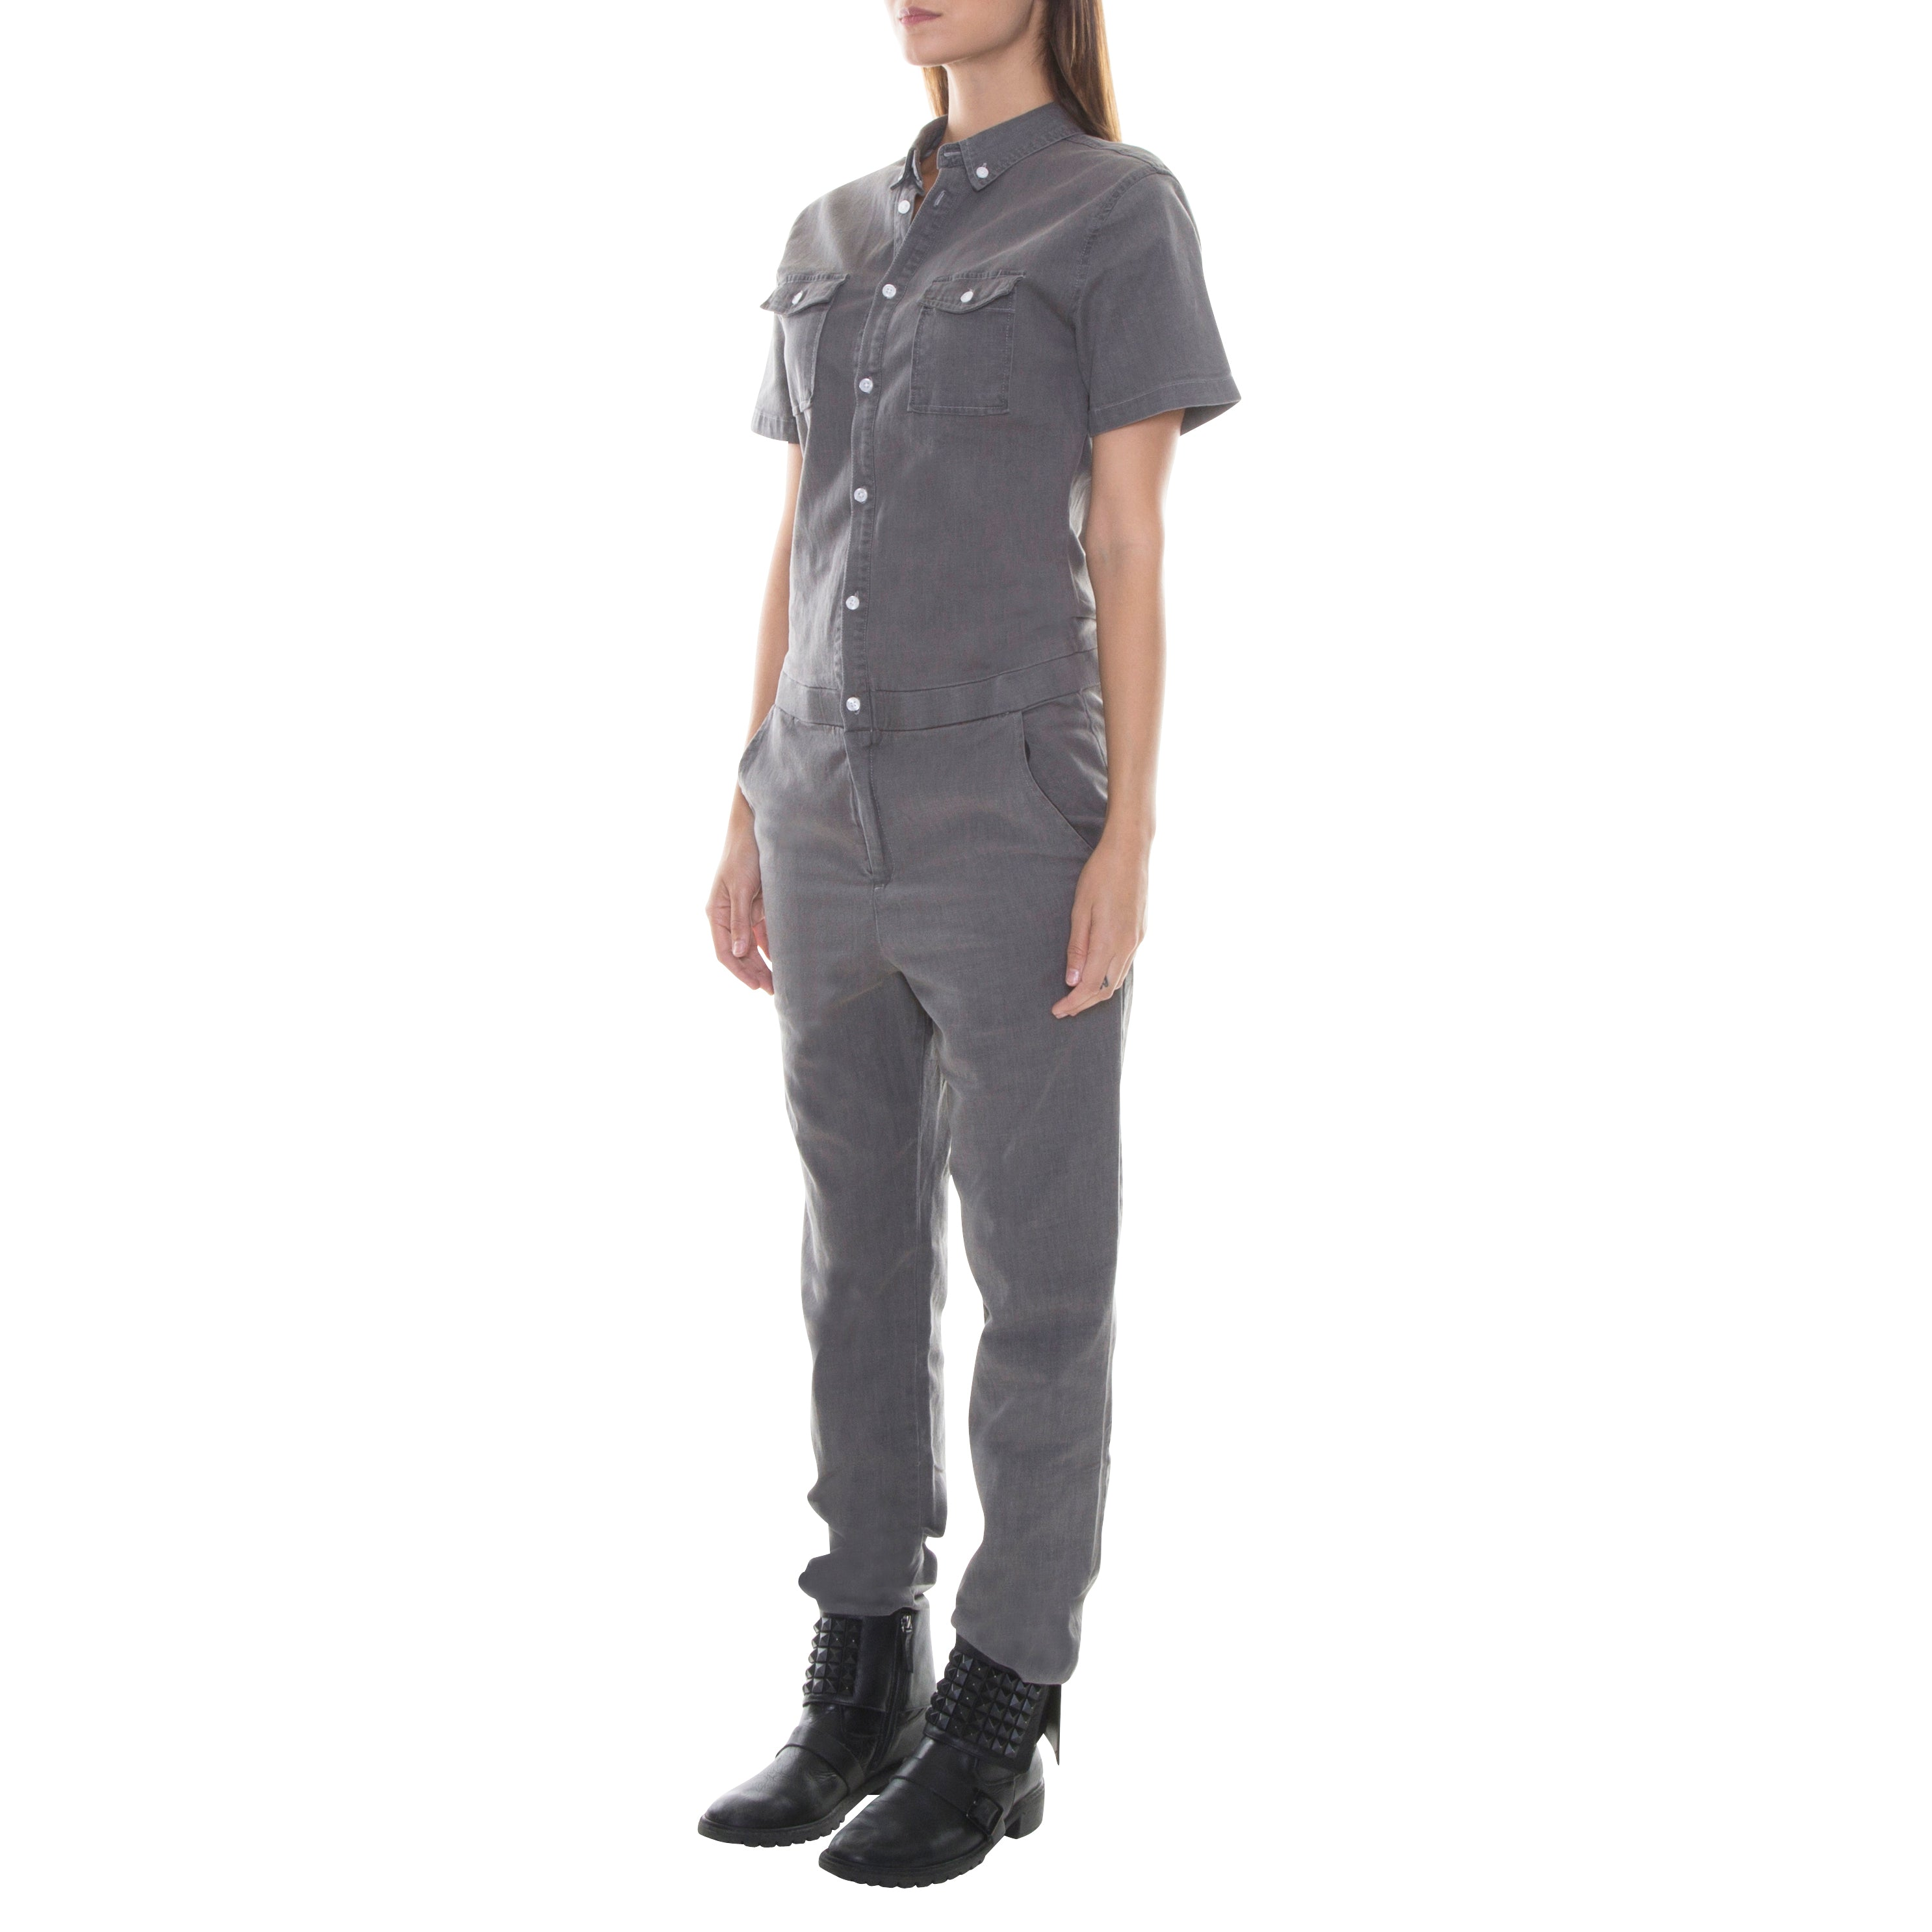 SHORT SLEEVE JUMPER DARK GREY CHAMBRAY